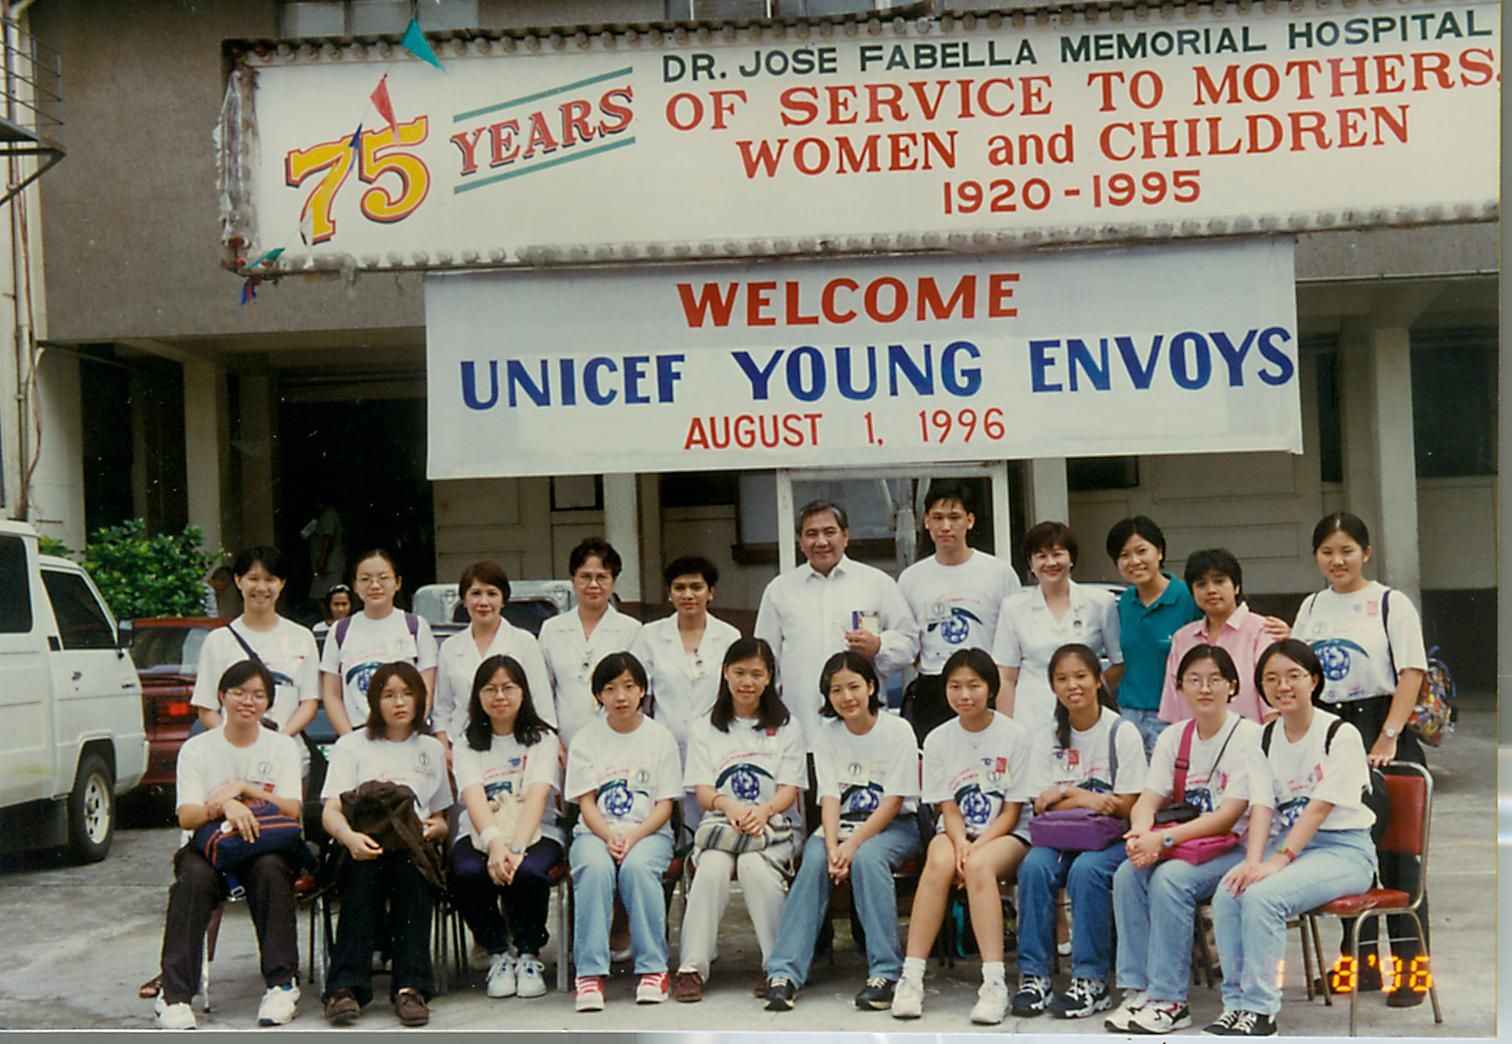 1996 - Young Envoys - 1